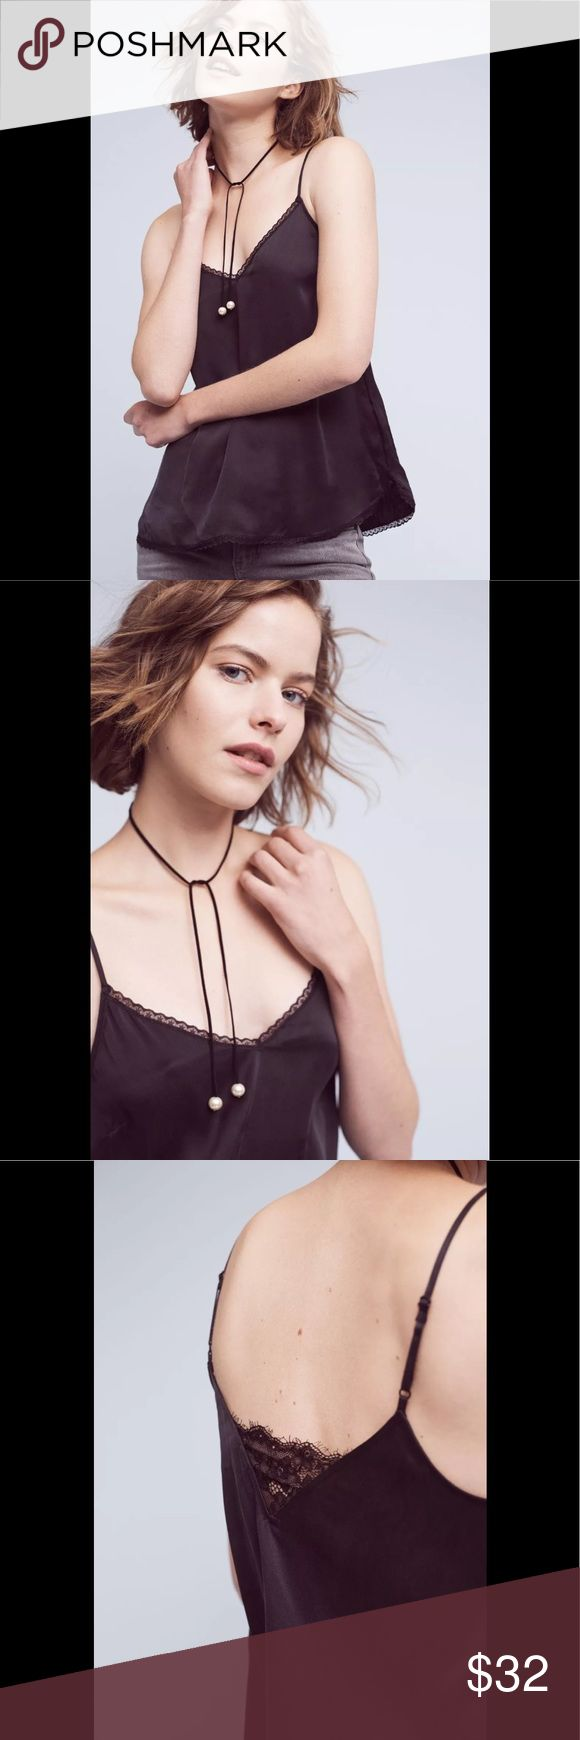 """Anthropologie Everglade Silk Cami Eloise XS NEW Anthropologie Everglade Silk Camisole by Eloise XS NEW Black 🌻Brand New Condition without tags. Feminine to theutmost, Eloise's ribboned-and-lacy designs - from sweet chemises to vintage-inspired underpinnings - are just-for-you must-haves. An Anthropologie exclusive. By Eloise. Silk Adjustable straps Pullover styling Hand wash Style No. 7148370067544 ; Color Code: 001. » Measured Flat; Bust: 16.5"""" Falls approx. (adjustable shoulder straps)24""""…"""